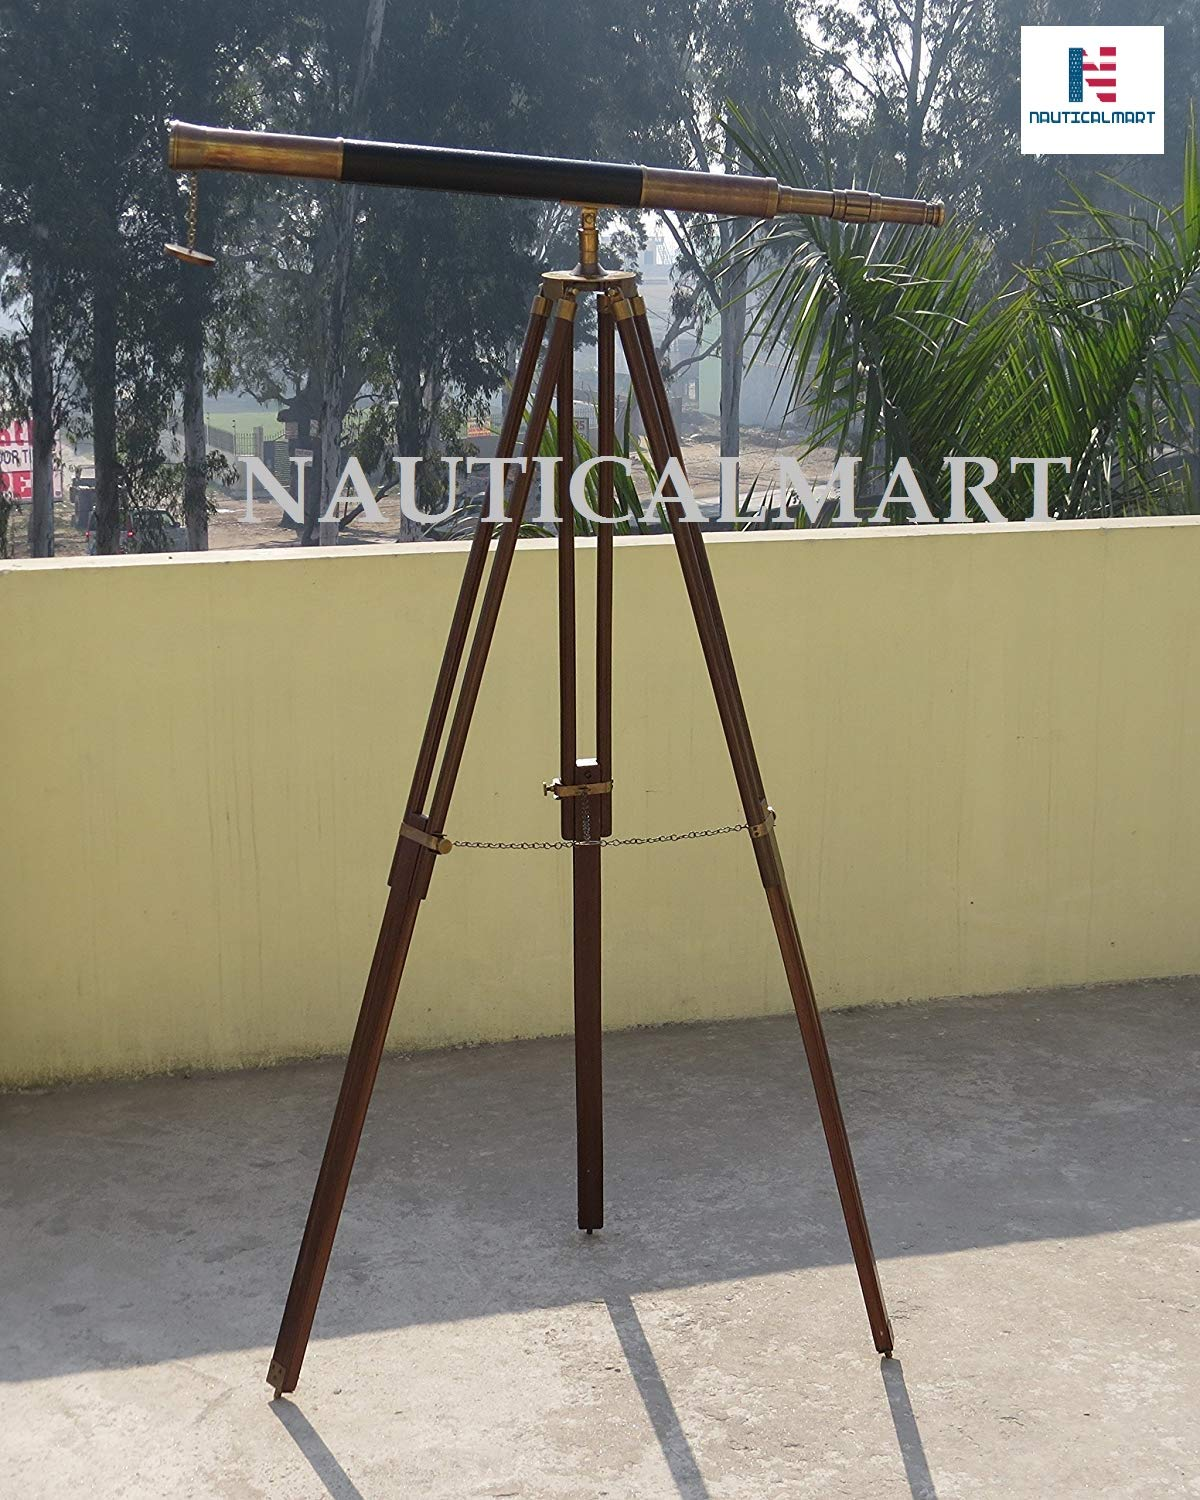 NauticalMart Vintage Marine Single Barrel Telescope & Tripod Maritime Collectible Gift by NauticalMart